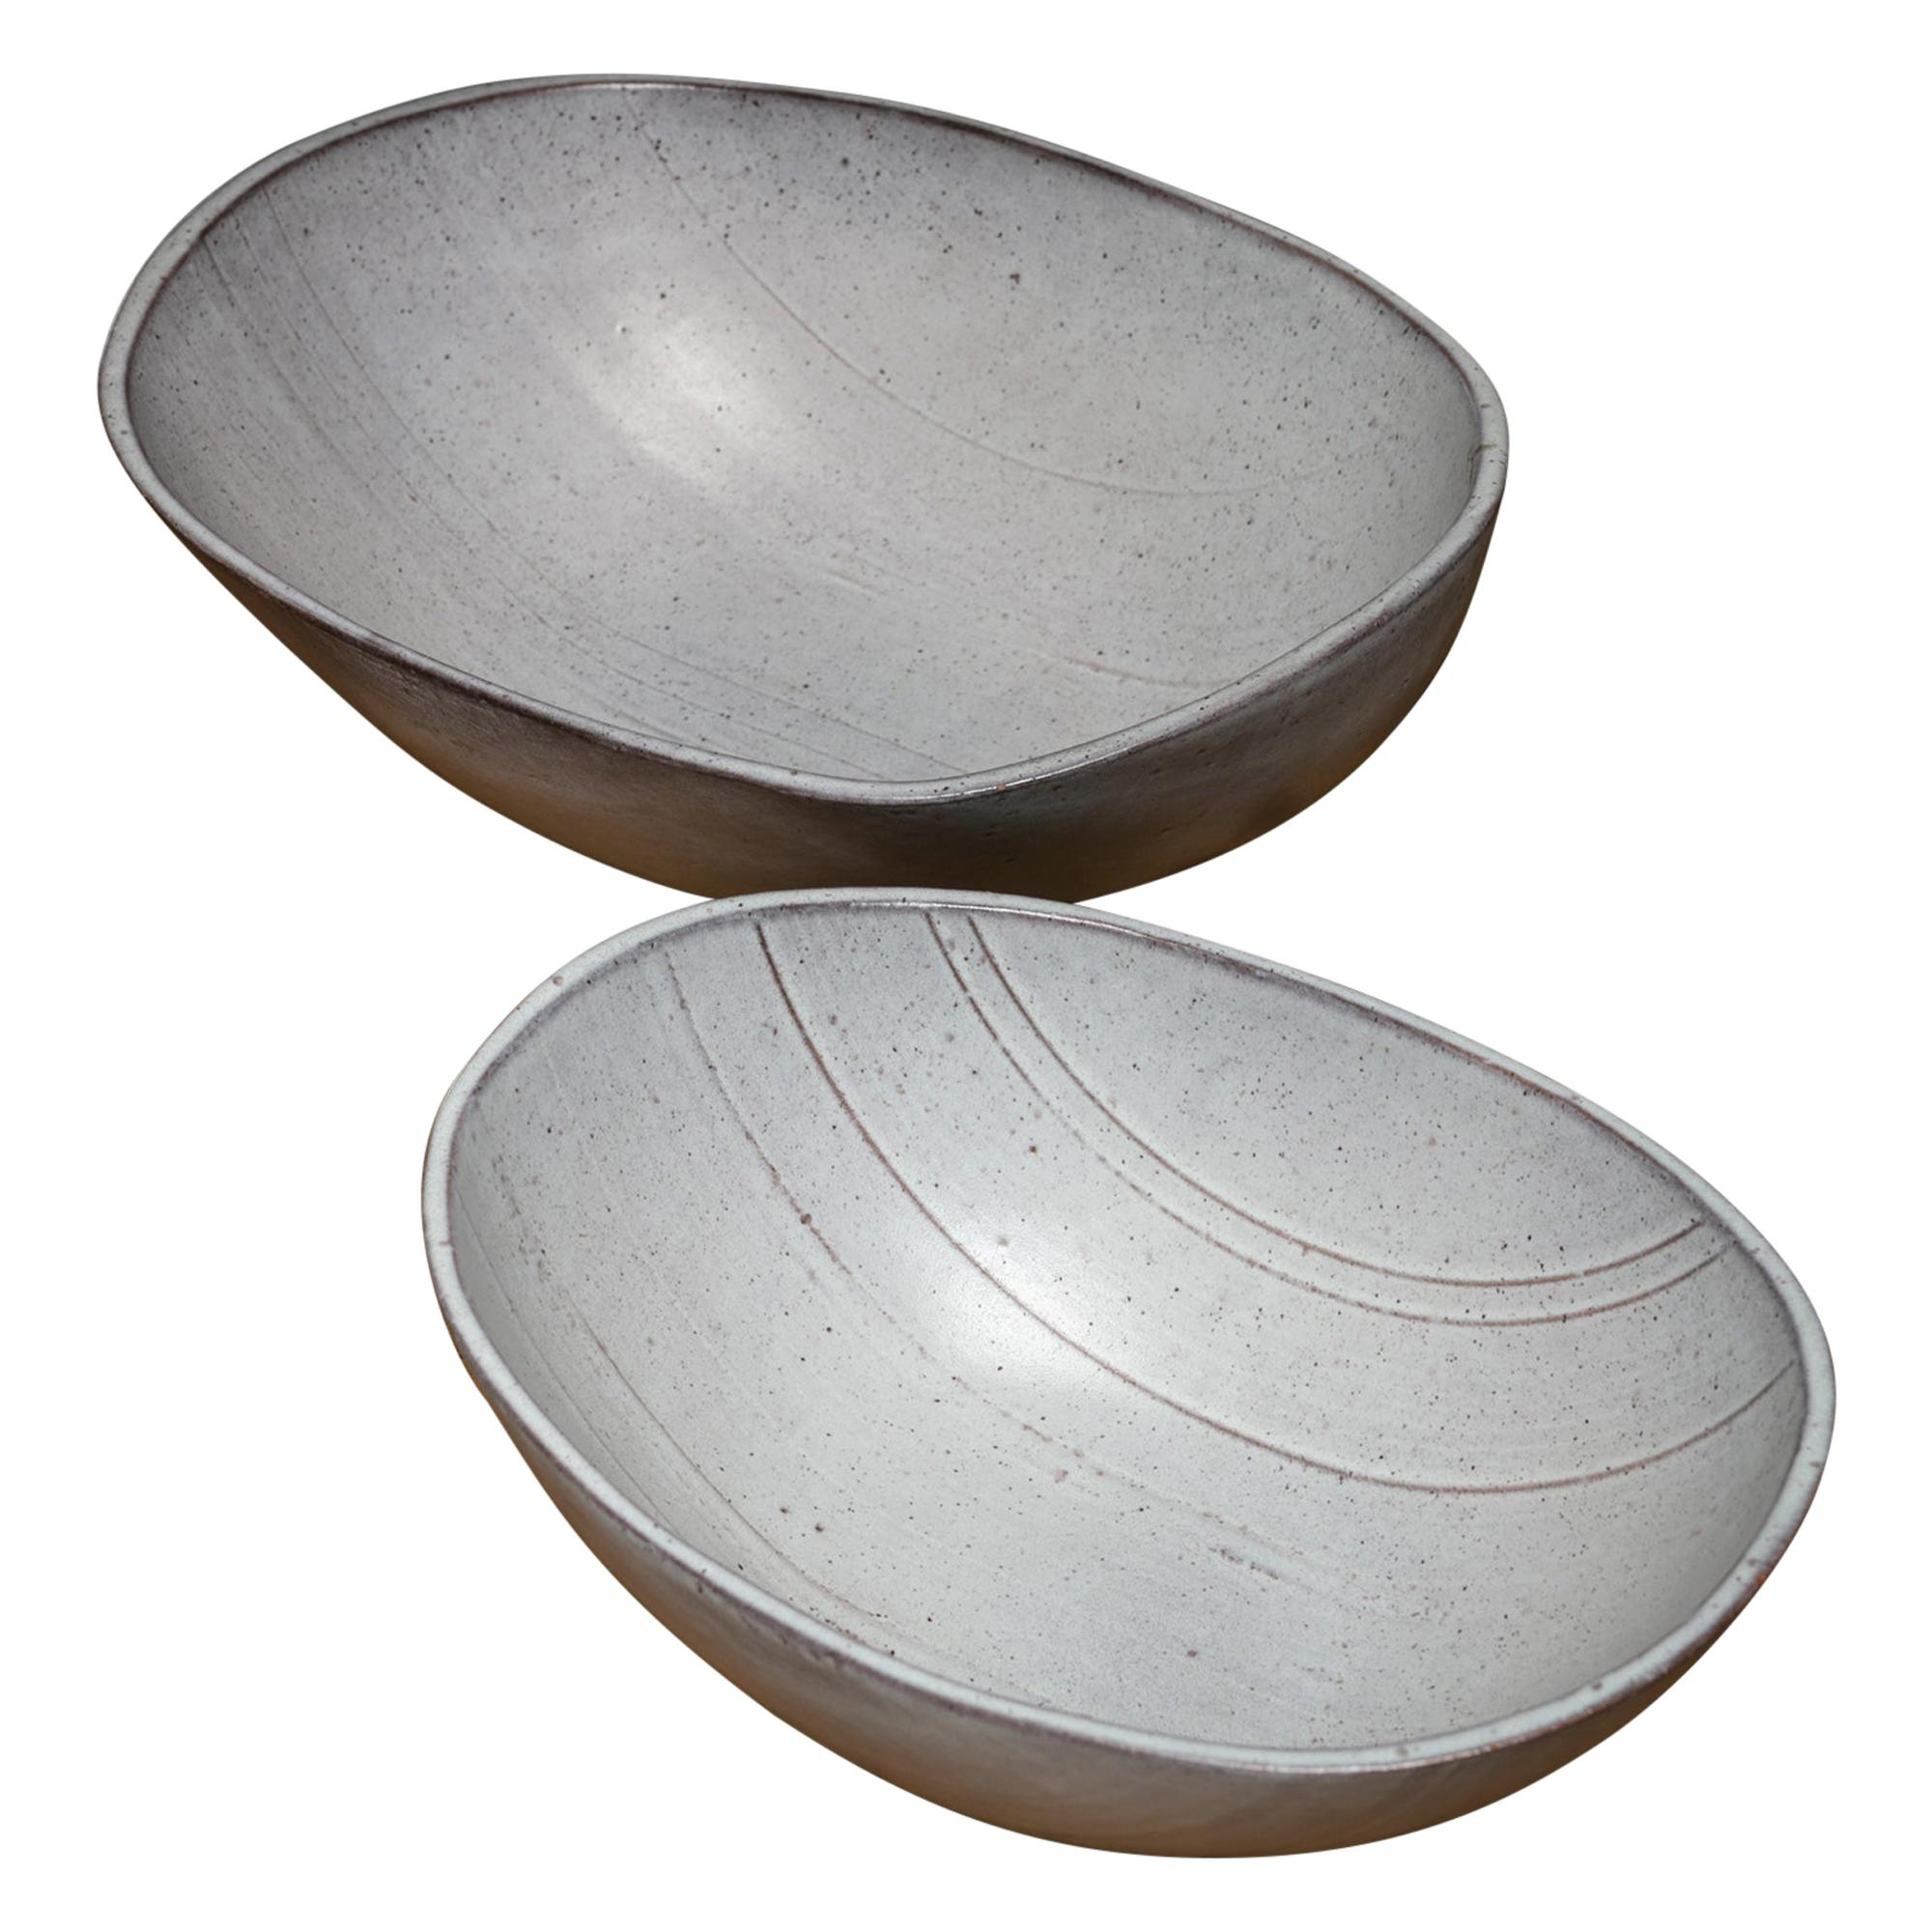 Rare Set of Two Ceramic Bowls by Alessio Tasca